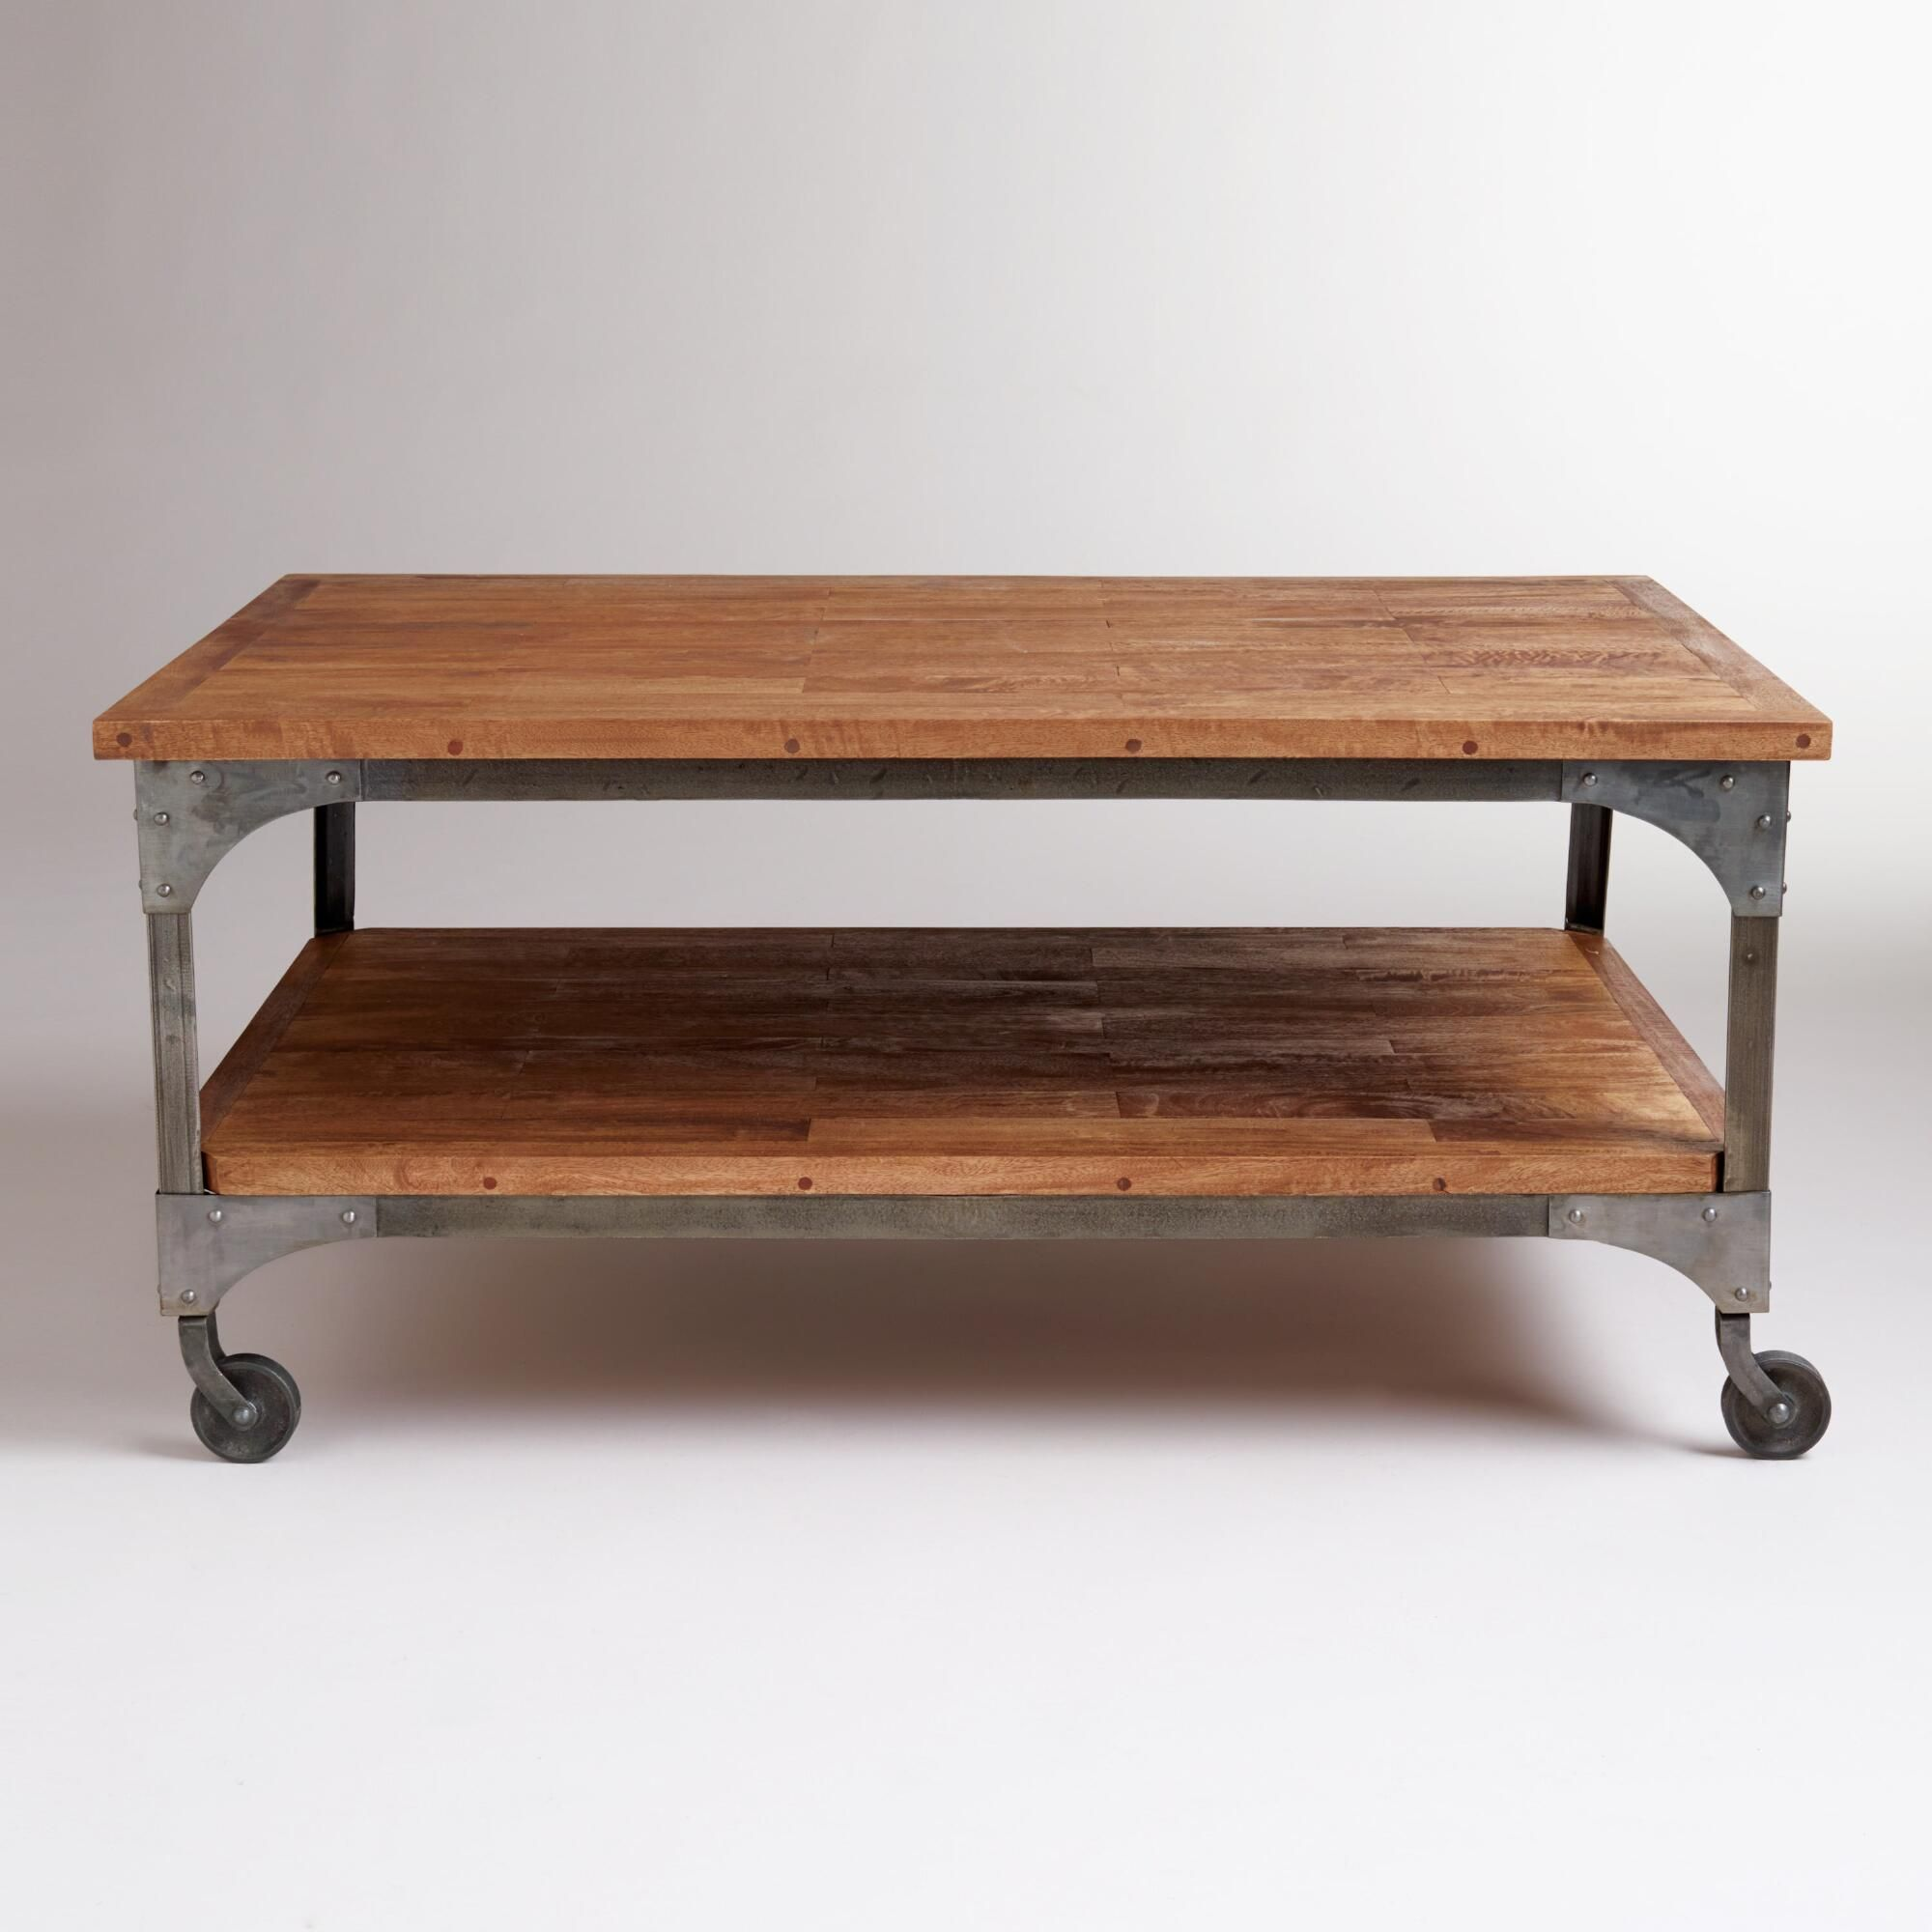 Aiden Coffee Table Coffee Table With Wheels Coffee Table With Casters Round Coffee Table [ 2000 x 2000 Pixel ]